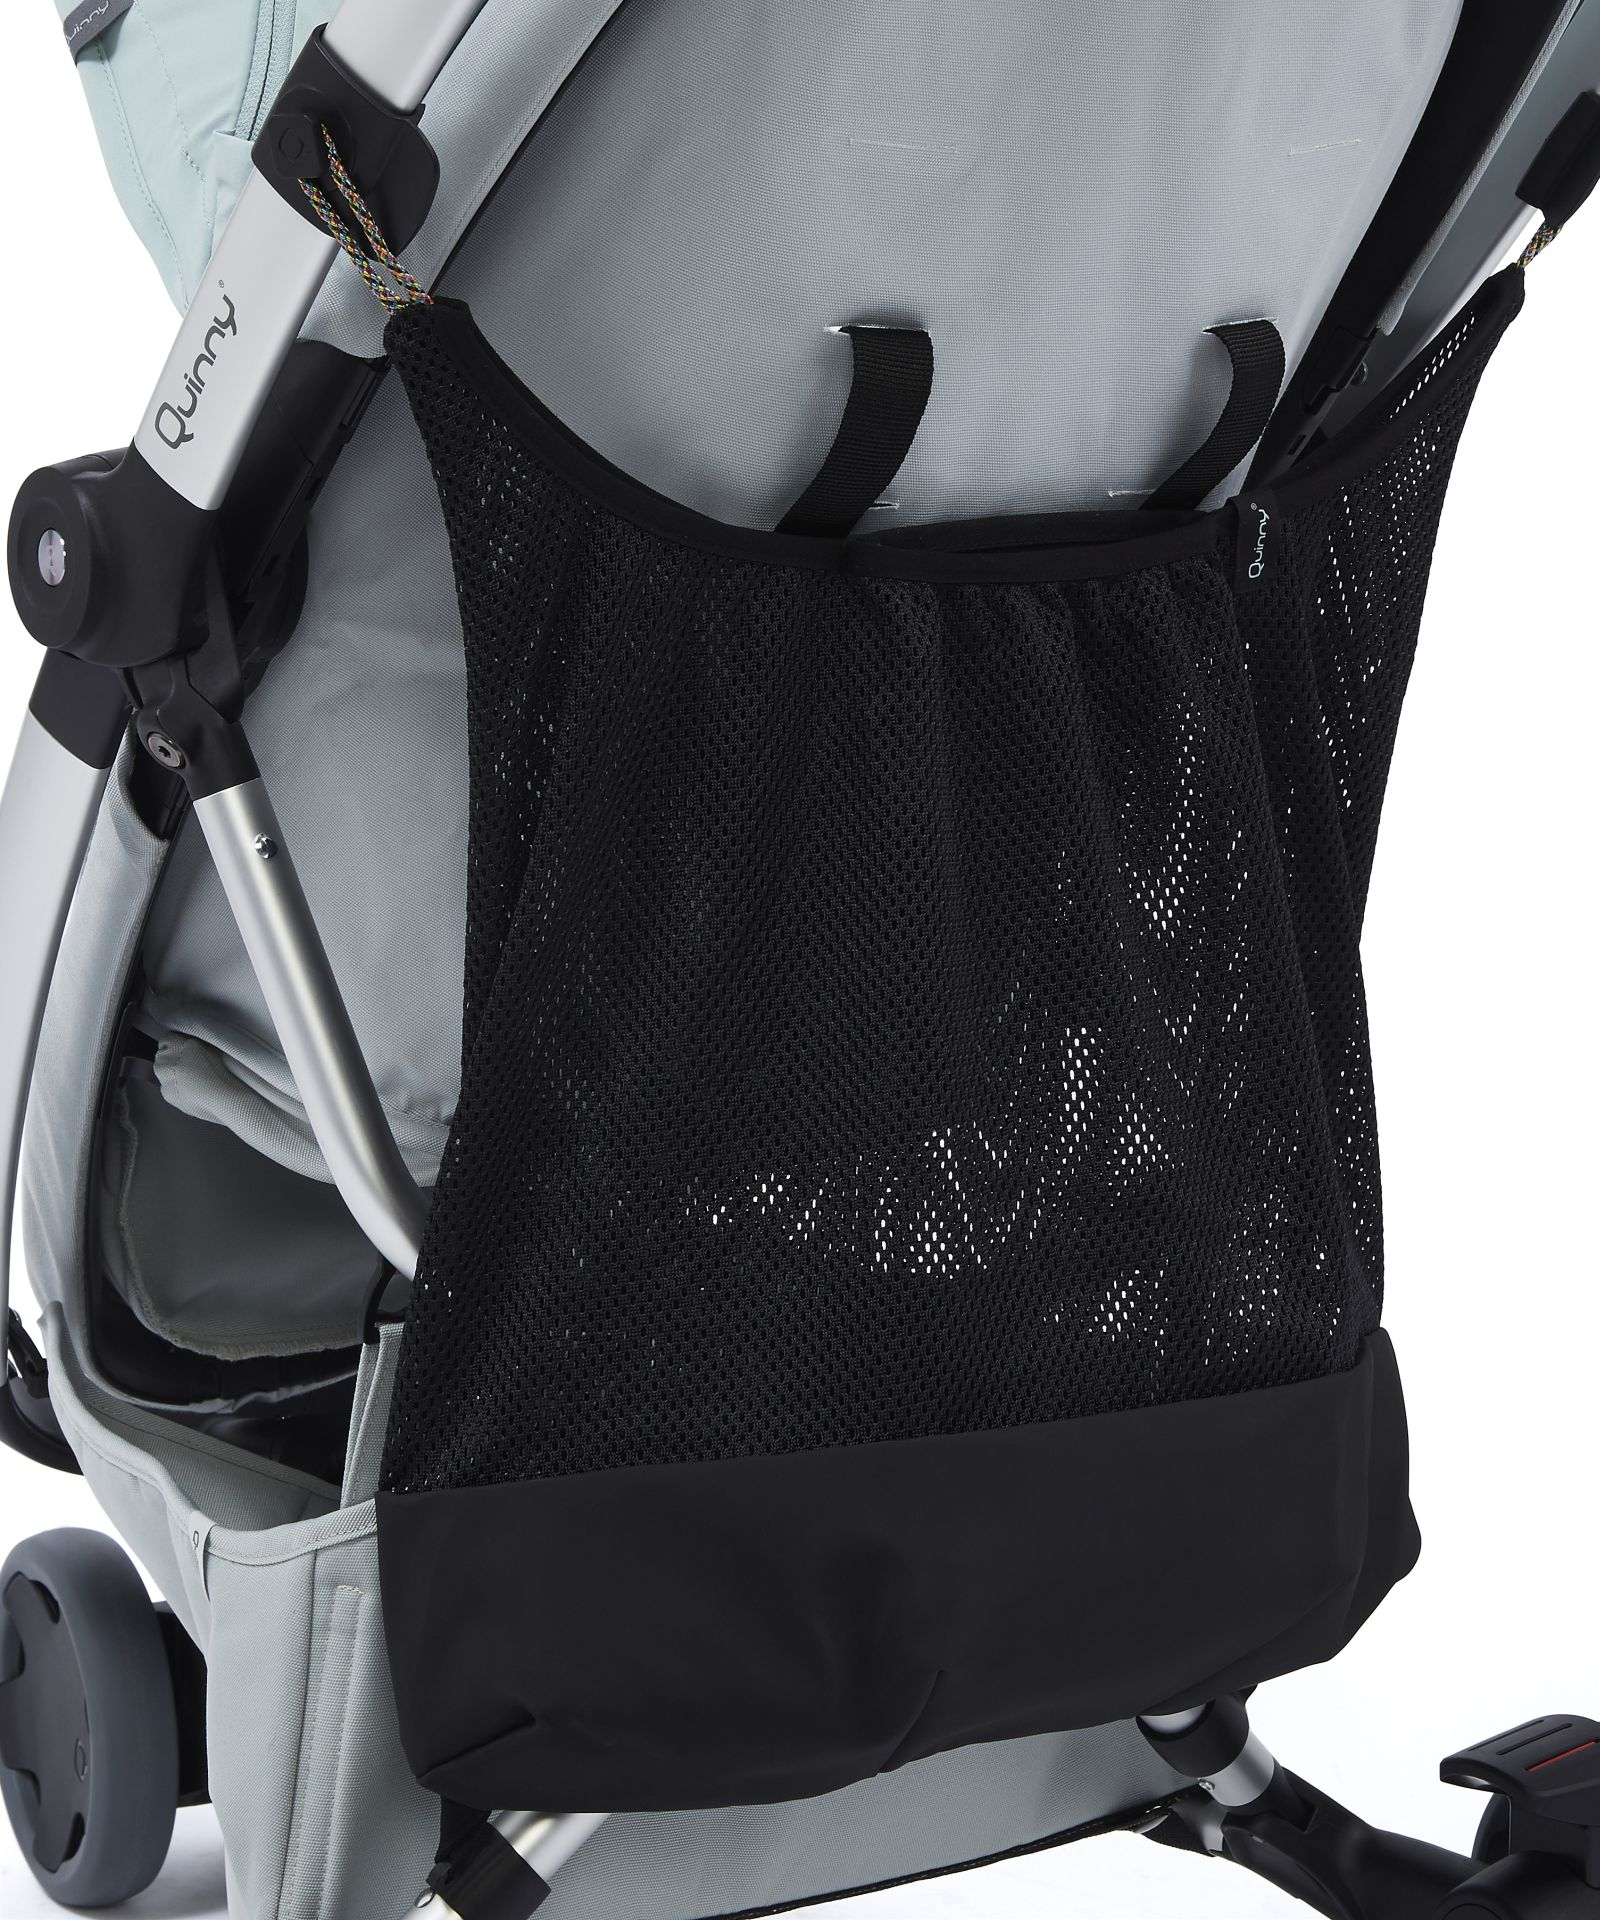 Quinny Zapp Xtra Shopping Bag - Buy at kidsroom | Strollers